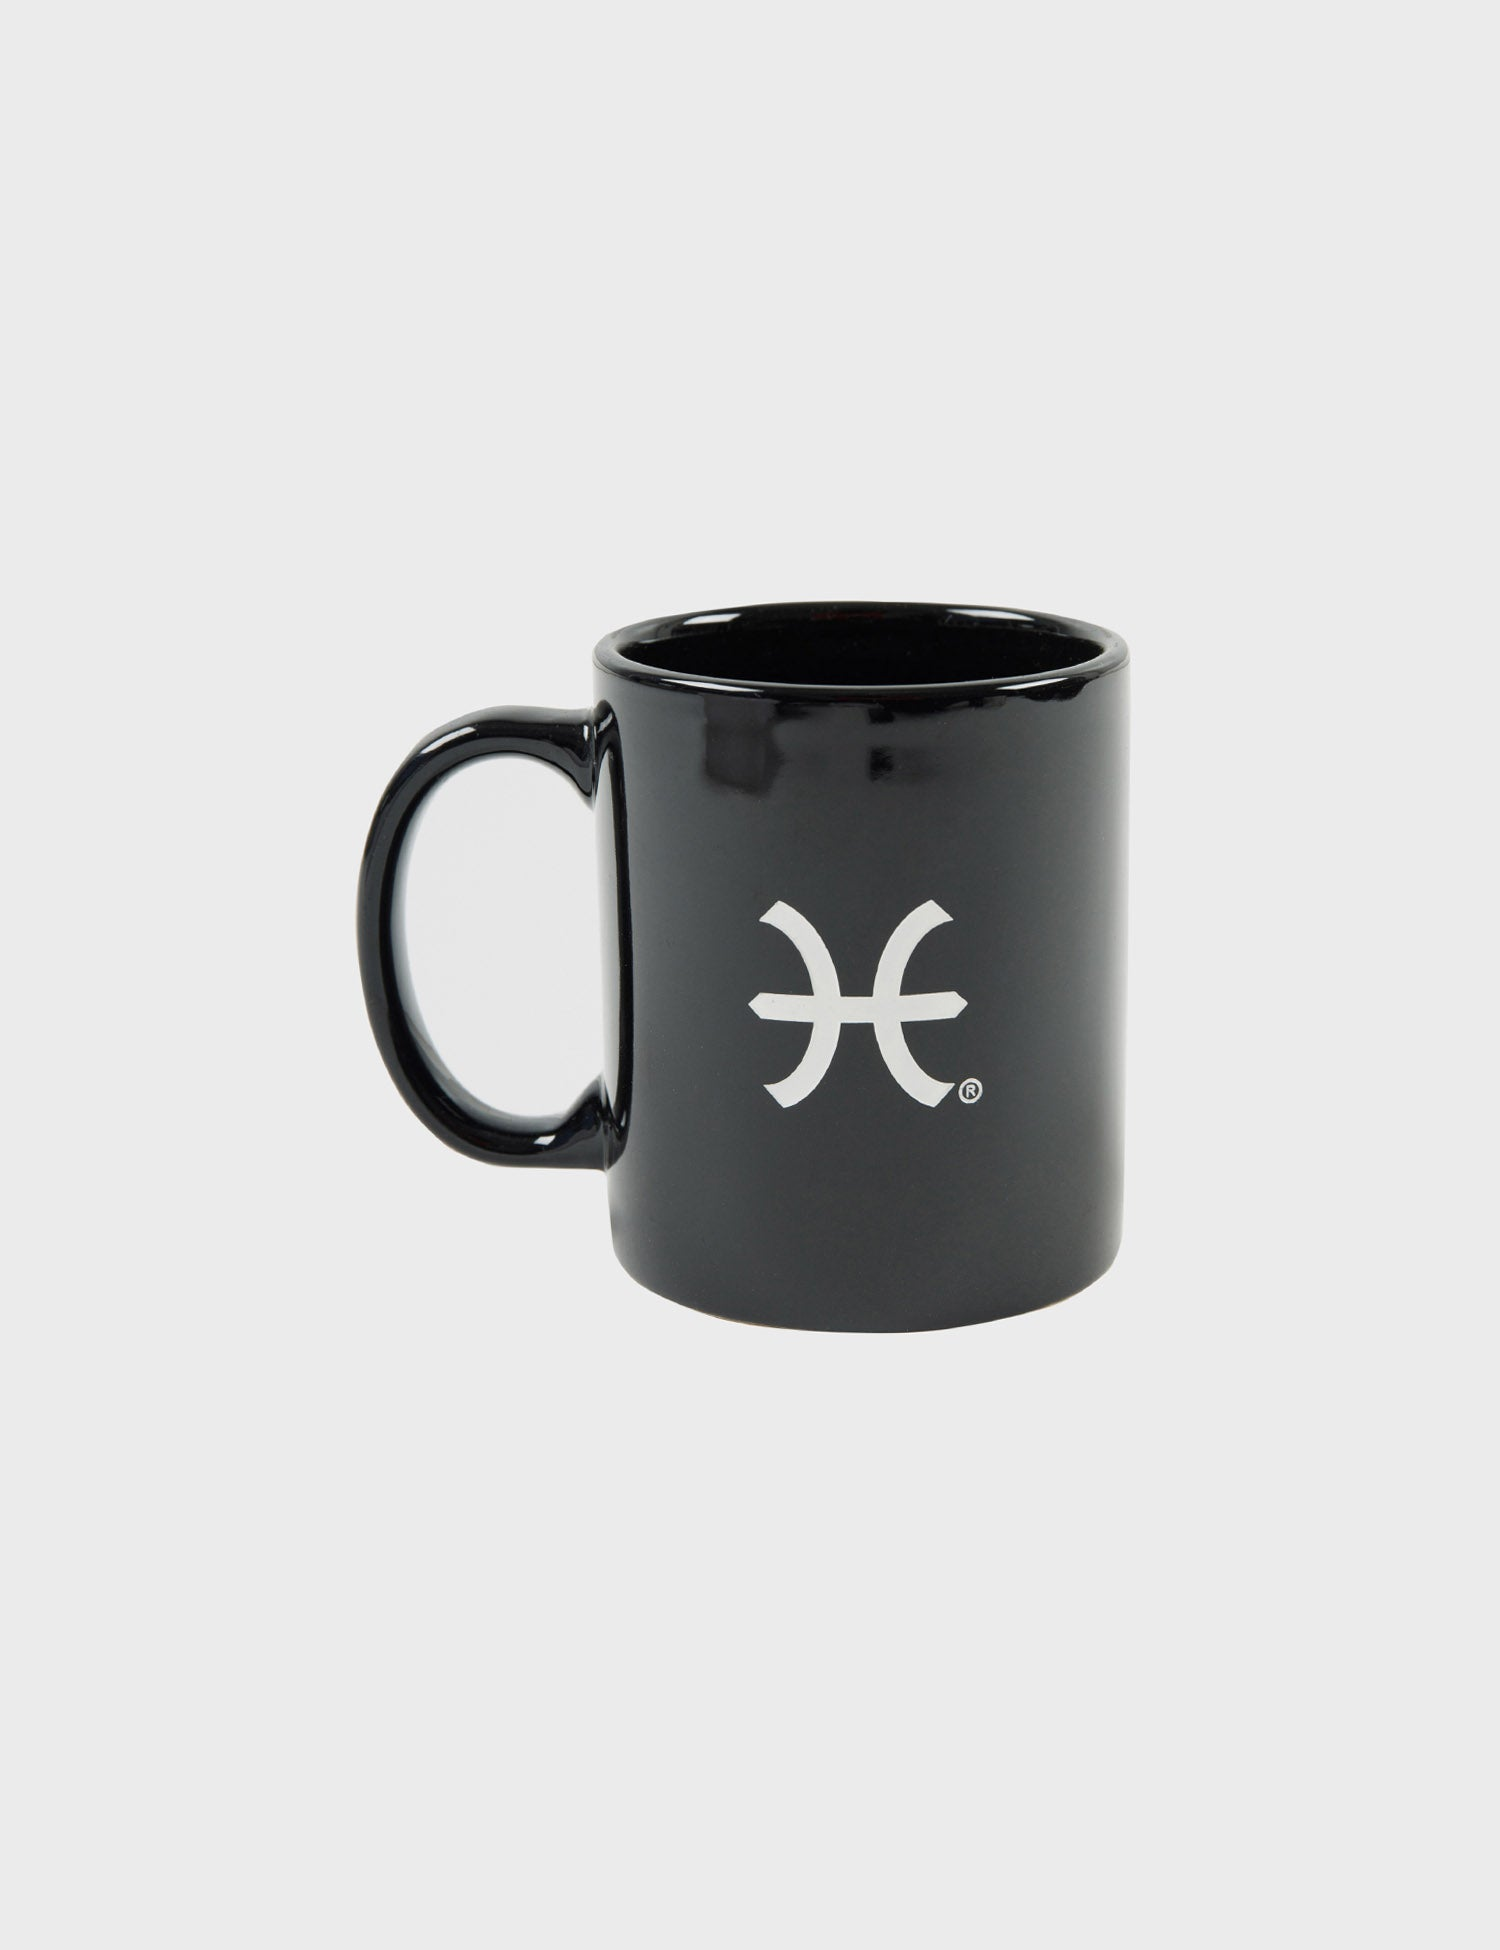 products/tth_2021_home-mug-black_emblem_05487b54-bc24-4801-aded-9f150cd608c8.jpg